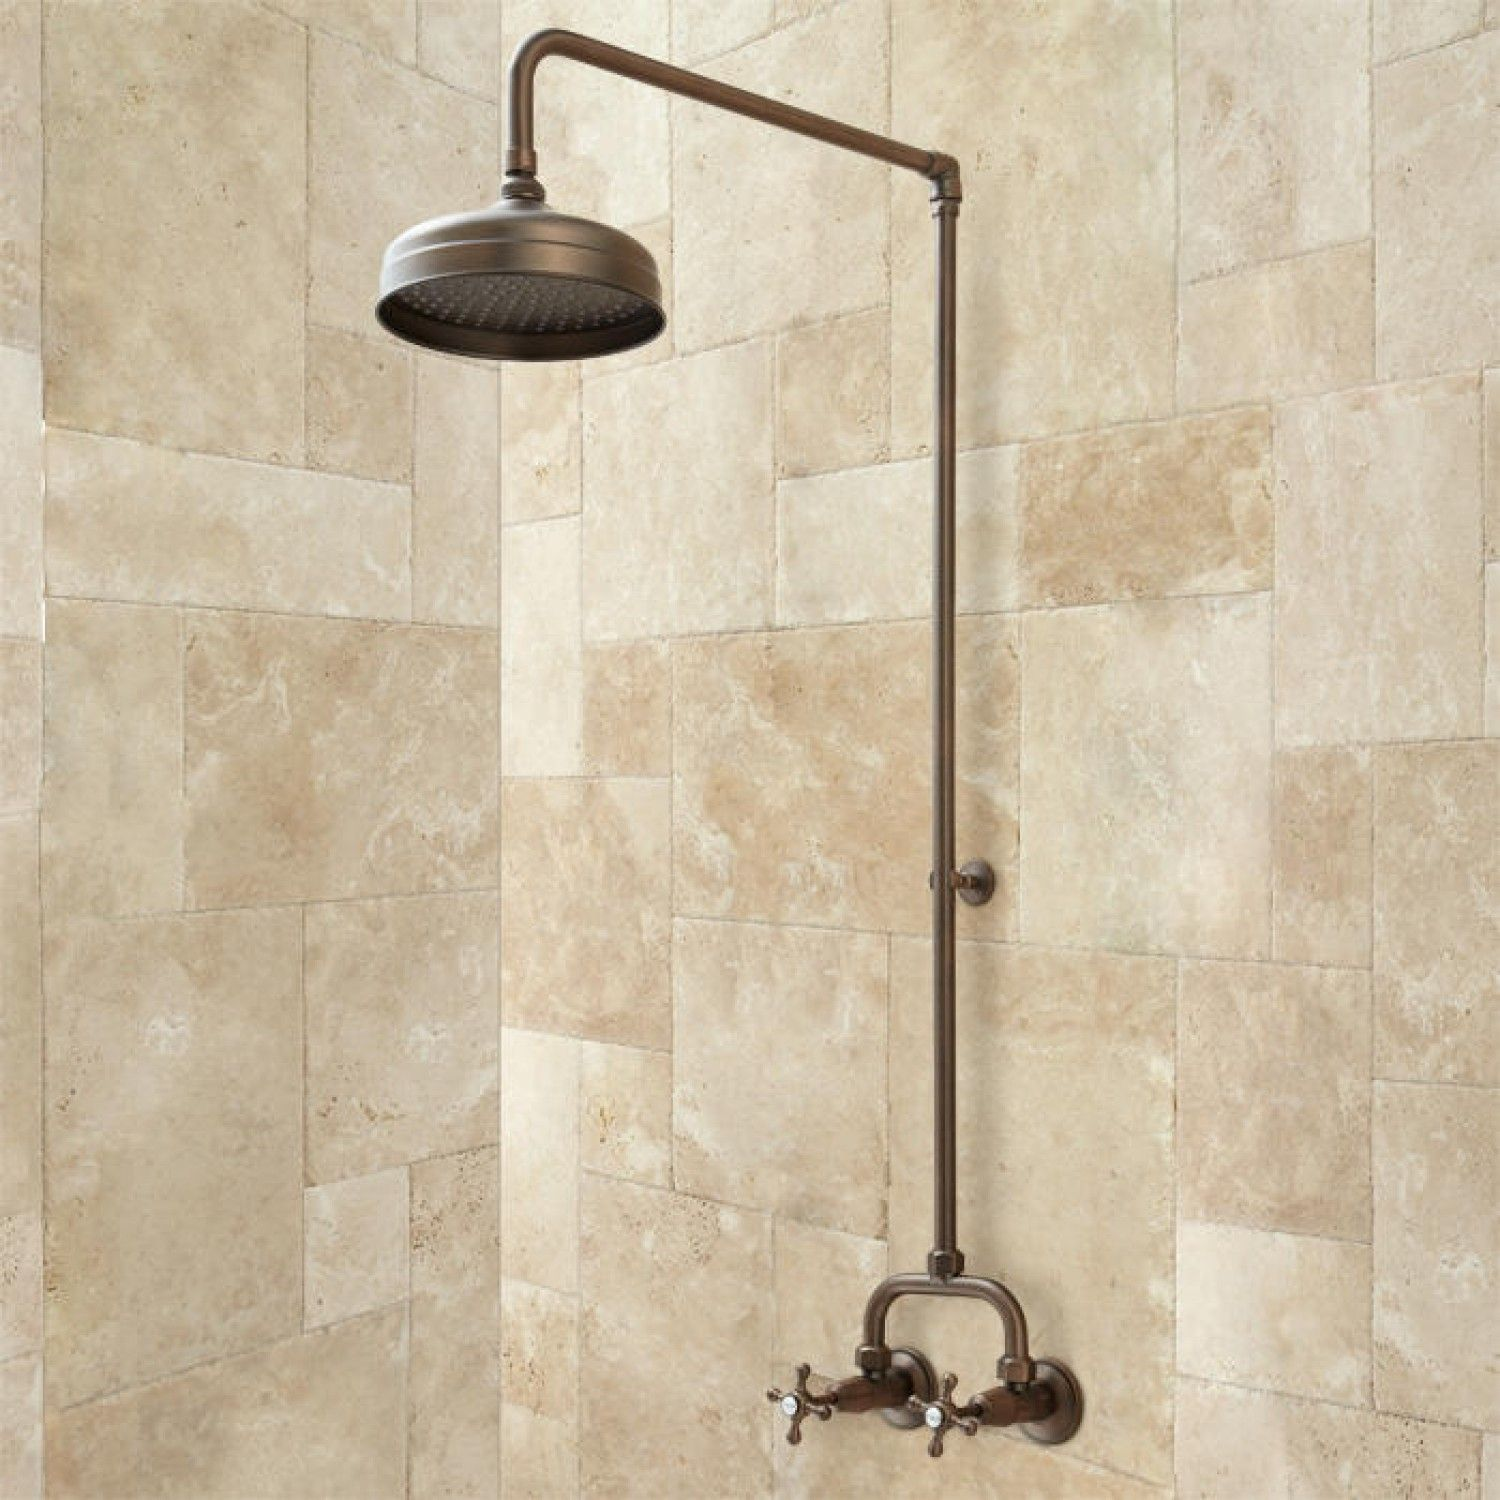 Baudette Exposed Pipe Wall-Mount Shower With Rainfall Shower Head ...